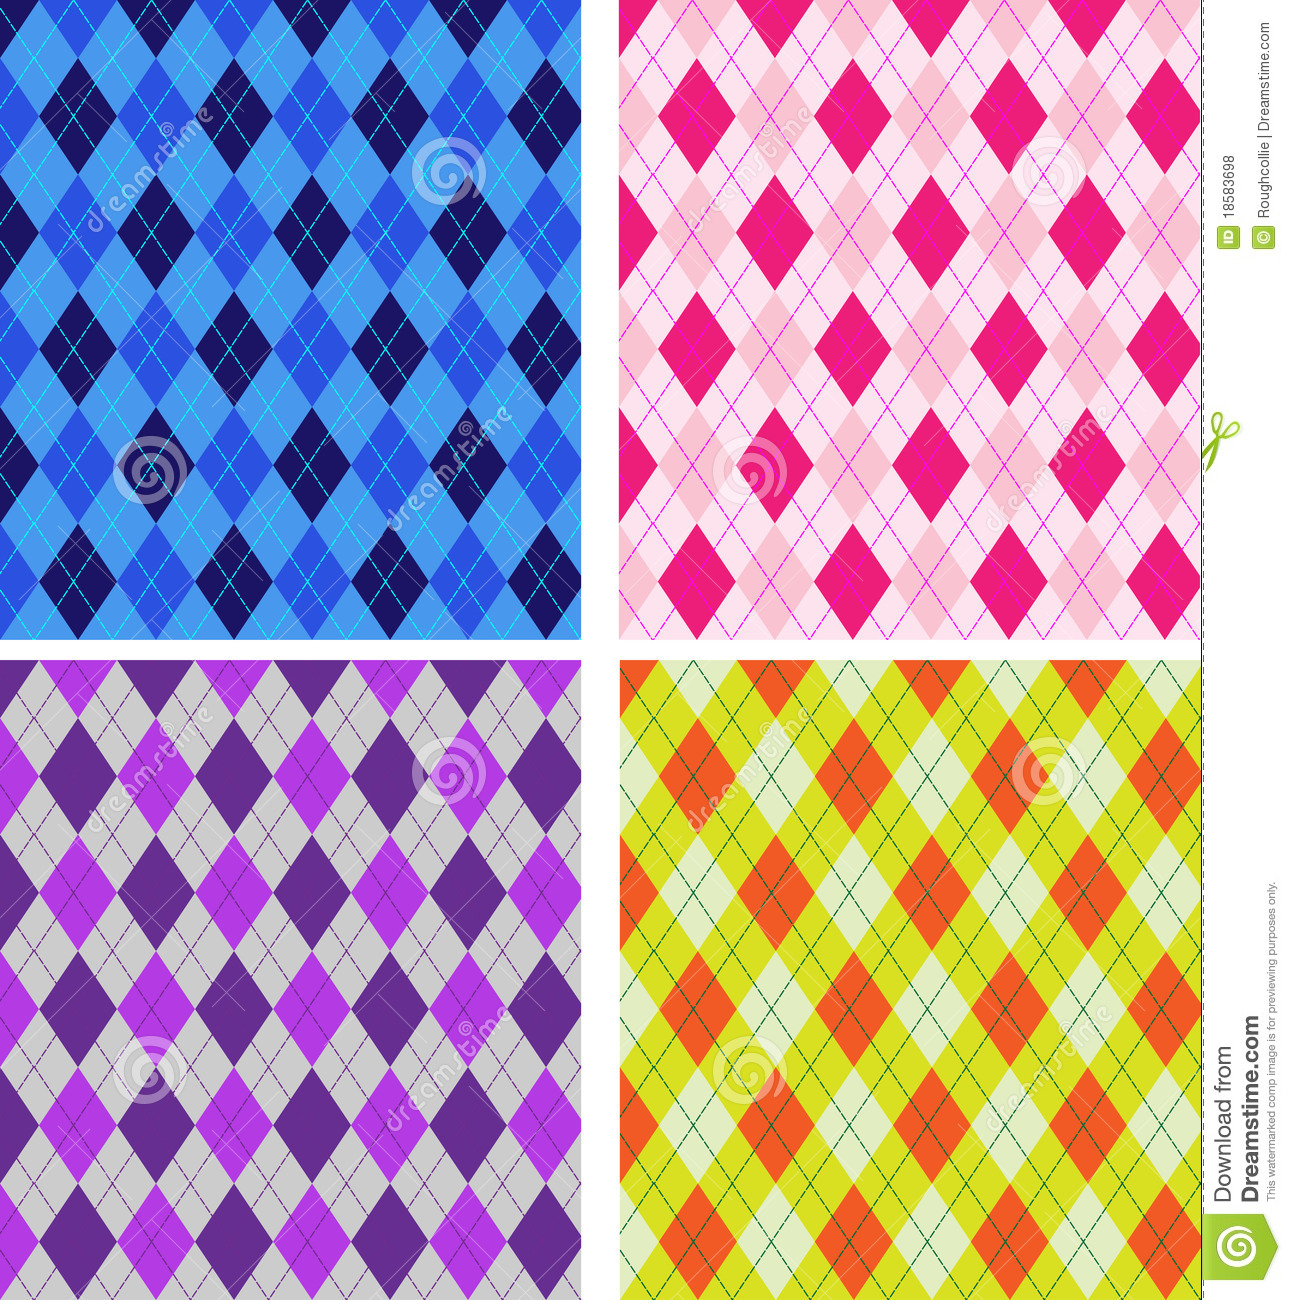 Stock Illustration Watercolour Painting Bright Marble Texture Cute Illustration Fo Design Fabrics T Shirts Other Apparel Phone Cases Dishes Image45830177 additionally Light Blue Texture Wallpaper also Colourful Background Designs in addition 20789760 Rainbow Chevron additionally Royalty Free Stock Photos Harlequin Pattern Set Seamless Image18583698. on bright purple background wallpaper